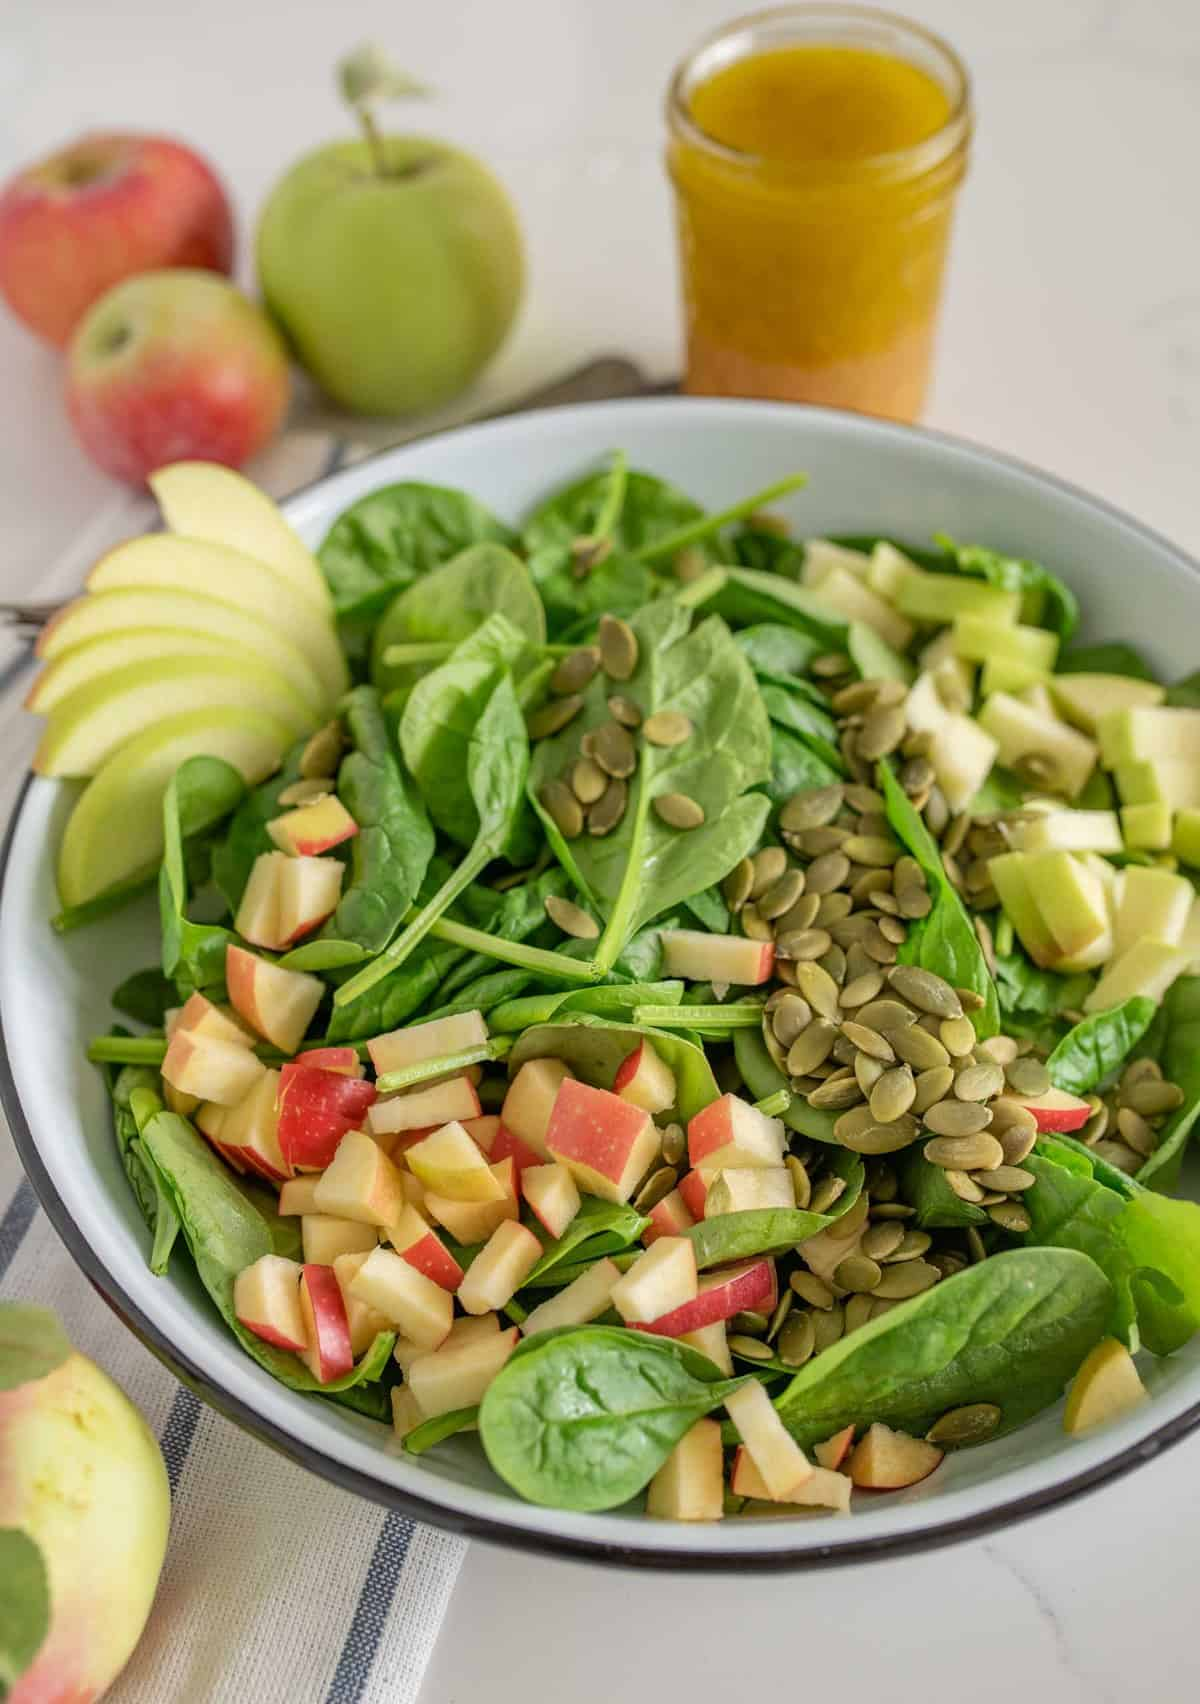 What do you put in a spinach salad?